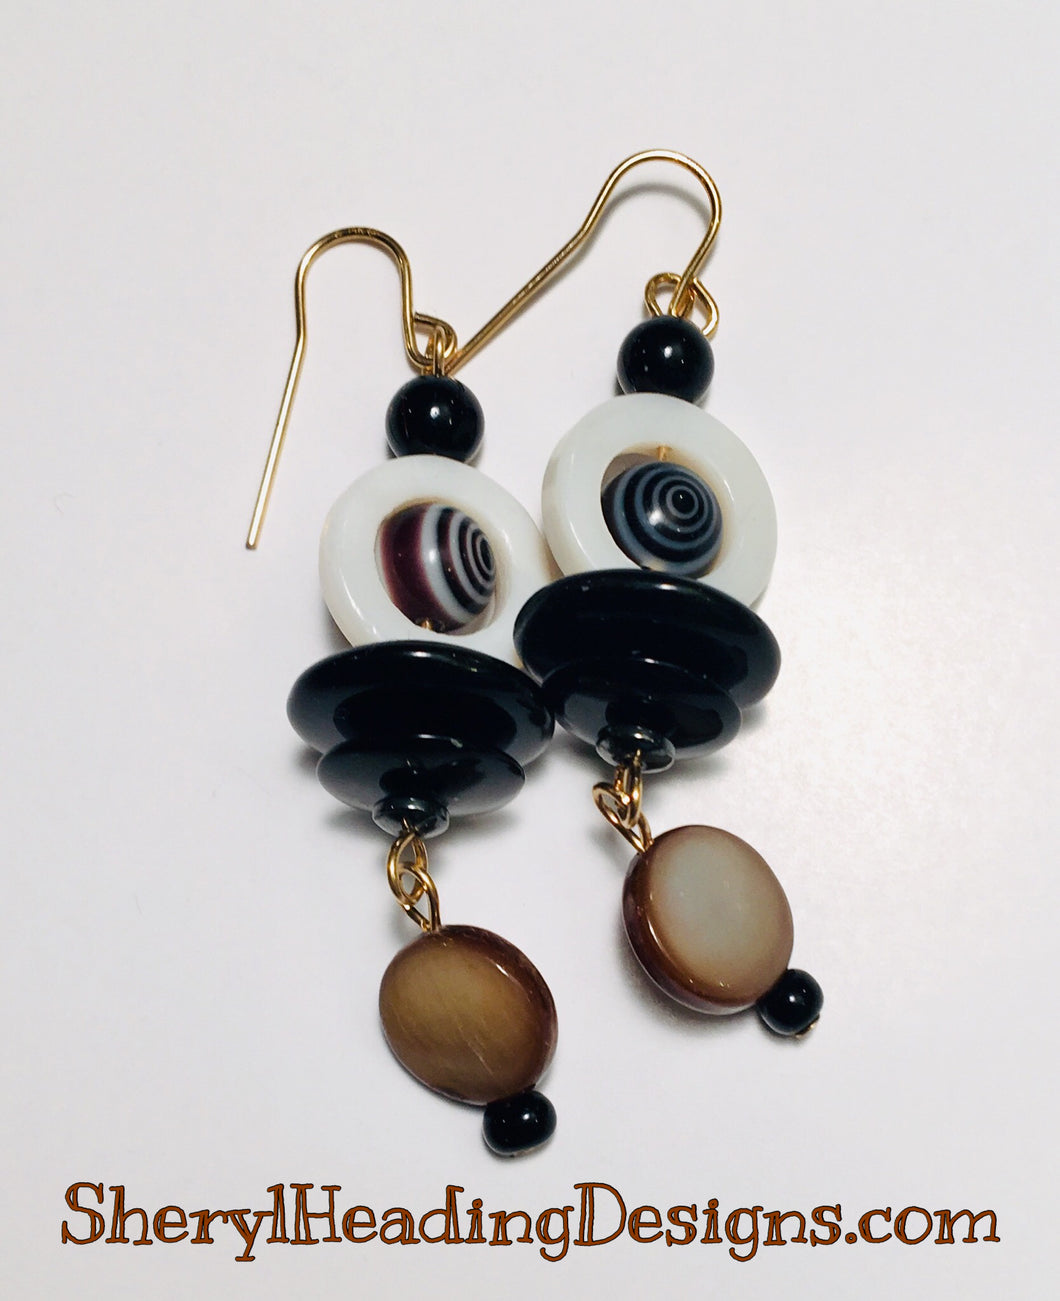 Double Drop Dangle Earrings - Sheryl Heading Designs